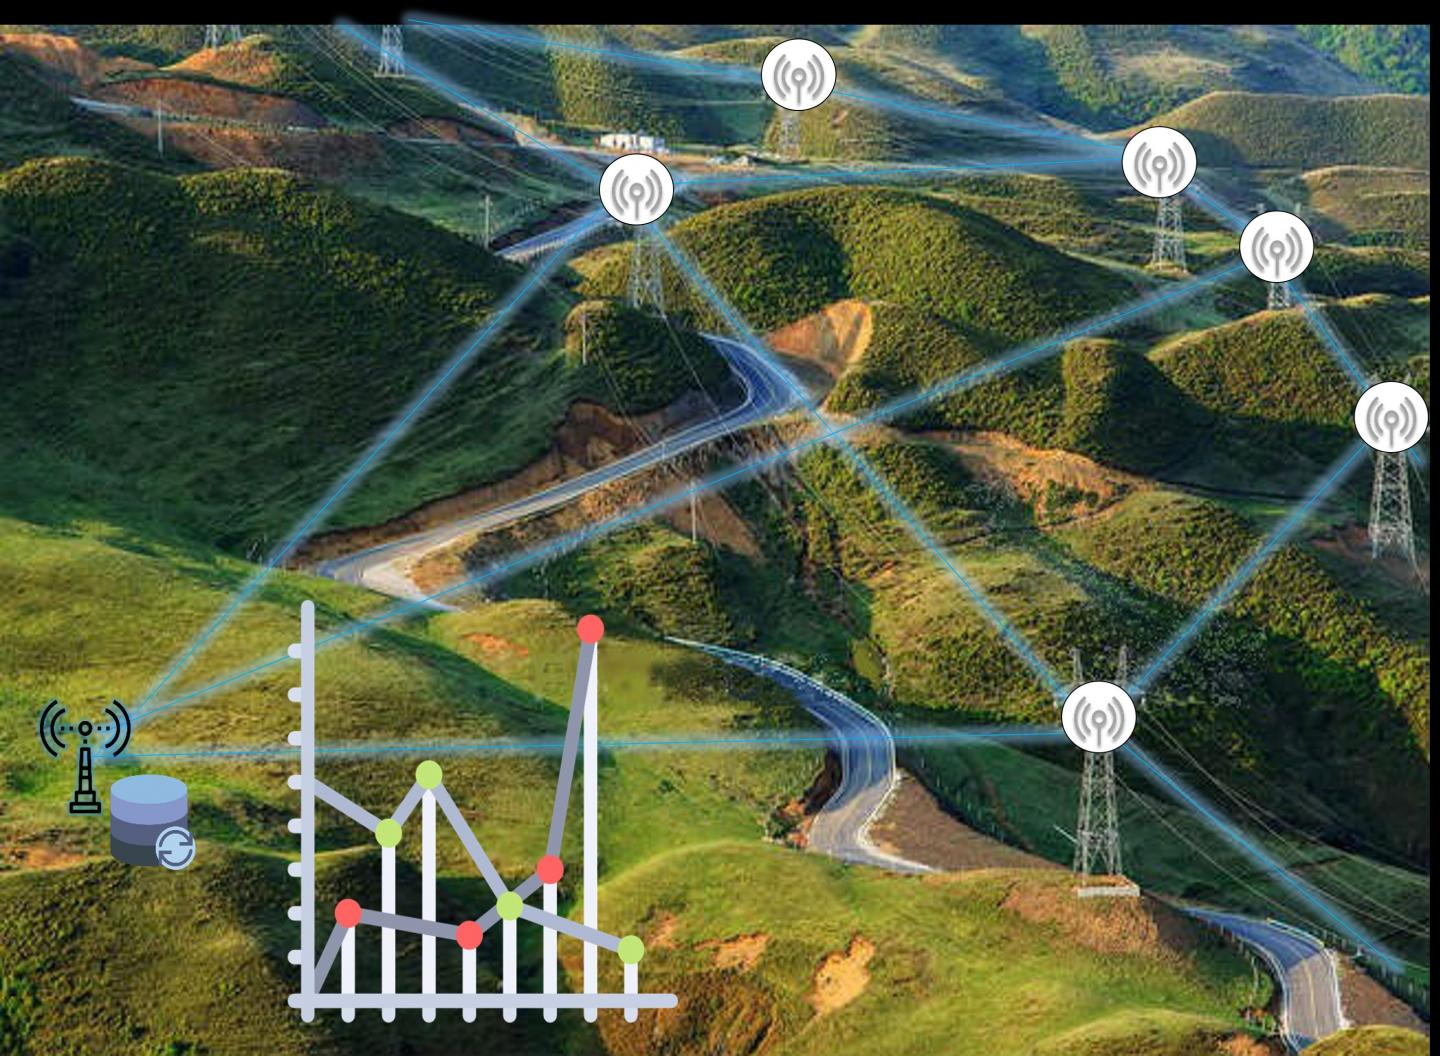 The PrognoNetz Project is Aimed at Monitoring Overhead Lines at High Resolution and in Real Time